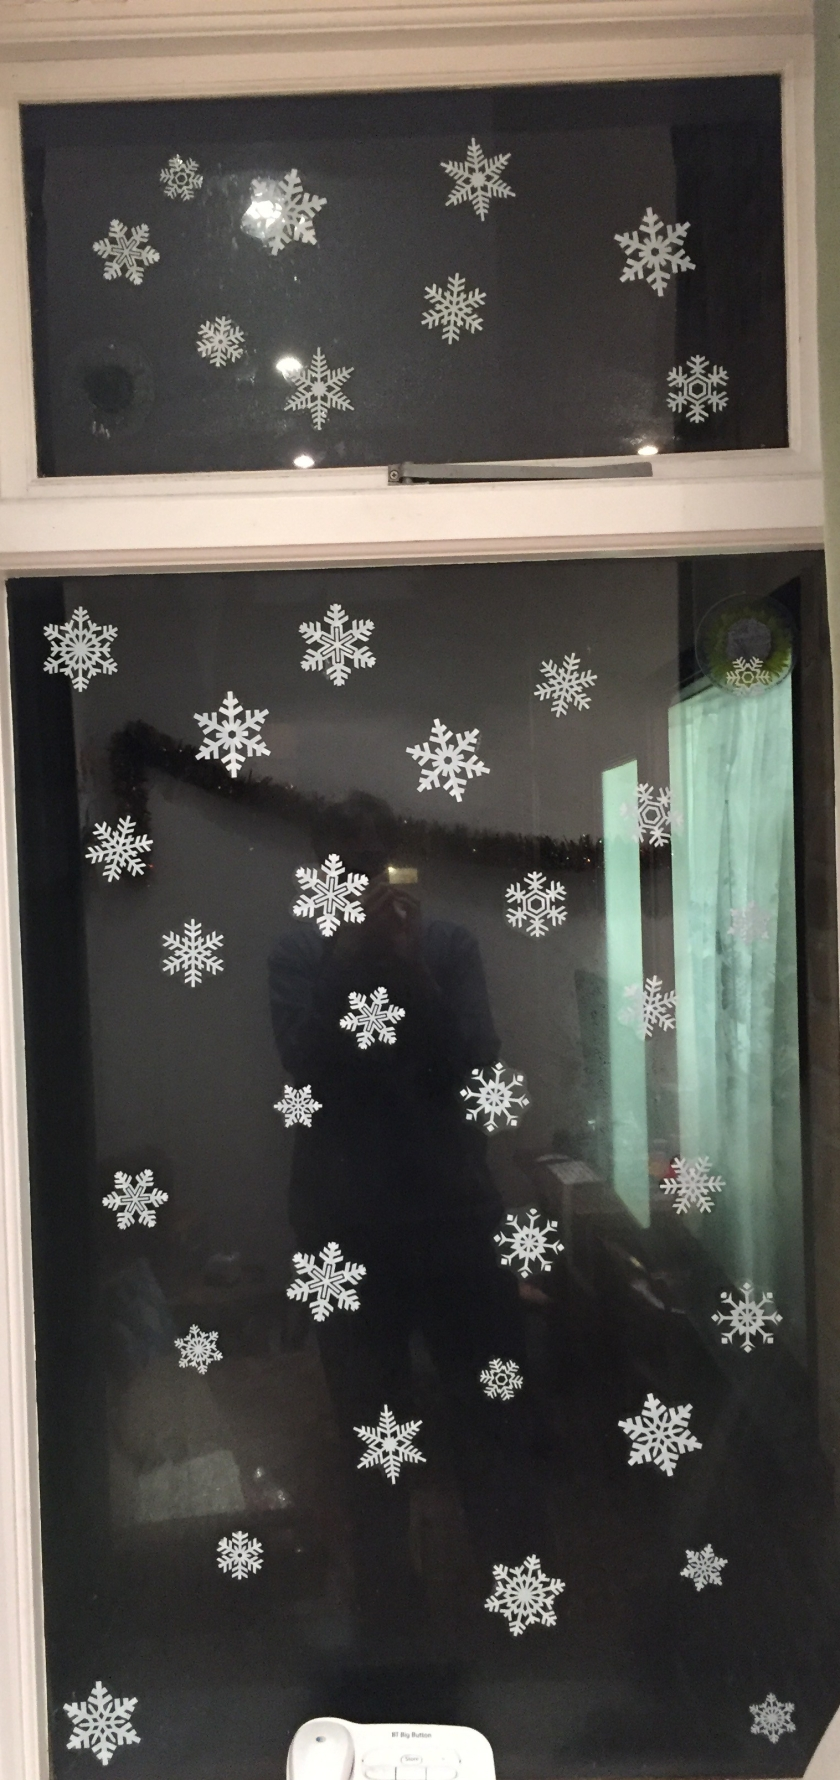 Varied white snowflake patterns stuck all over the lounge window